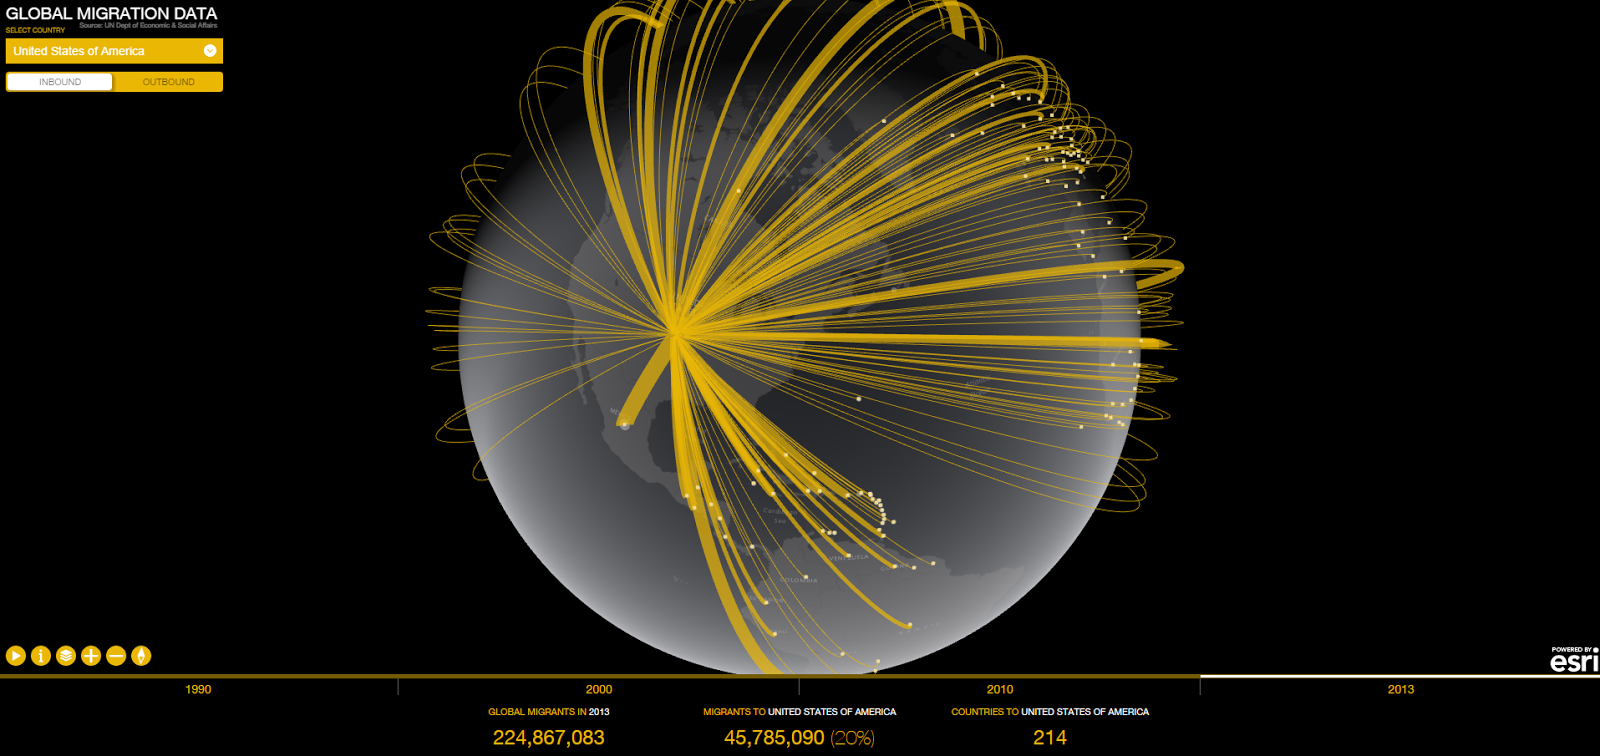 Global migration data